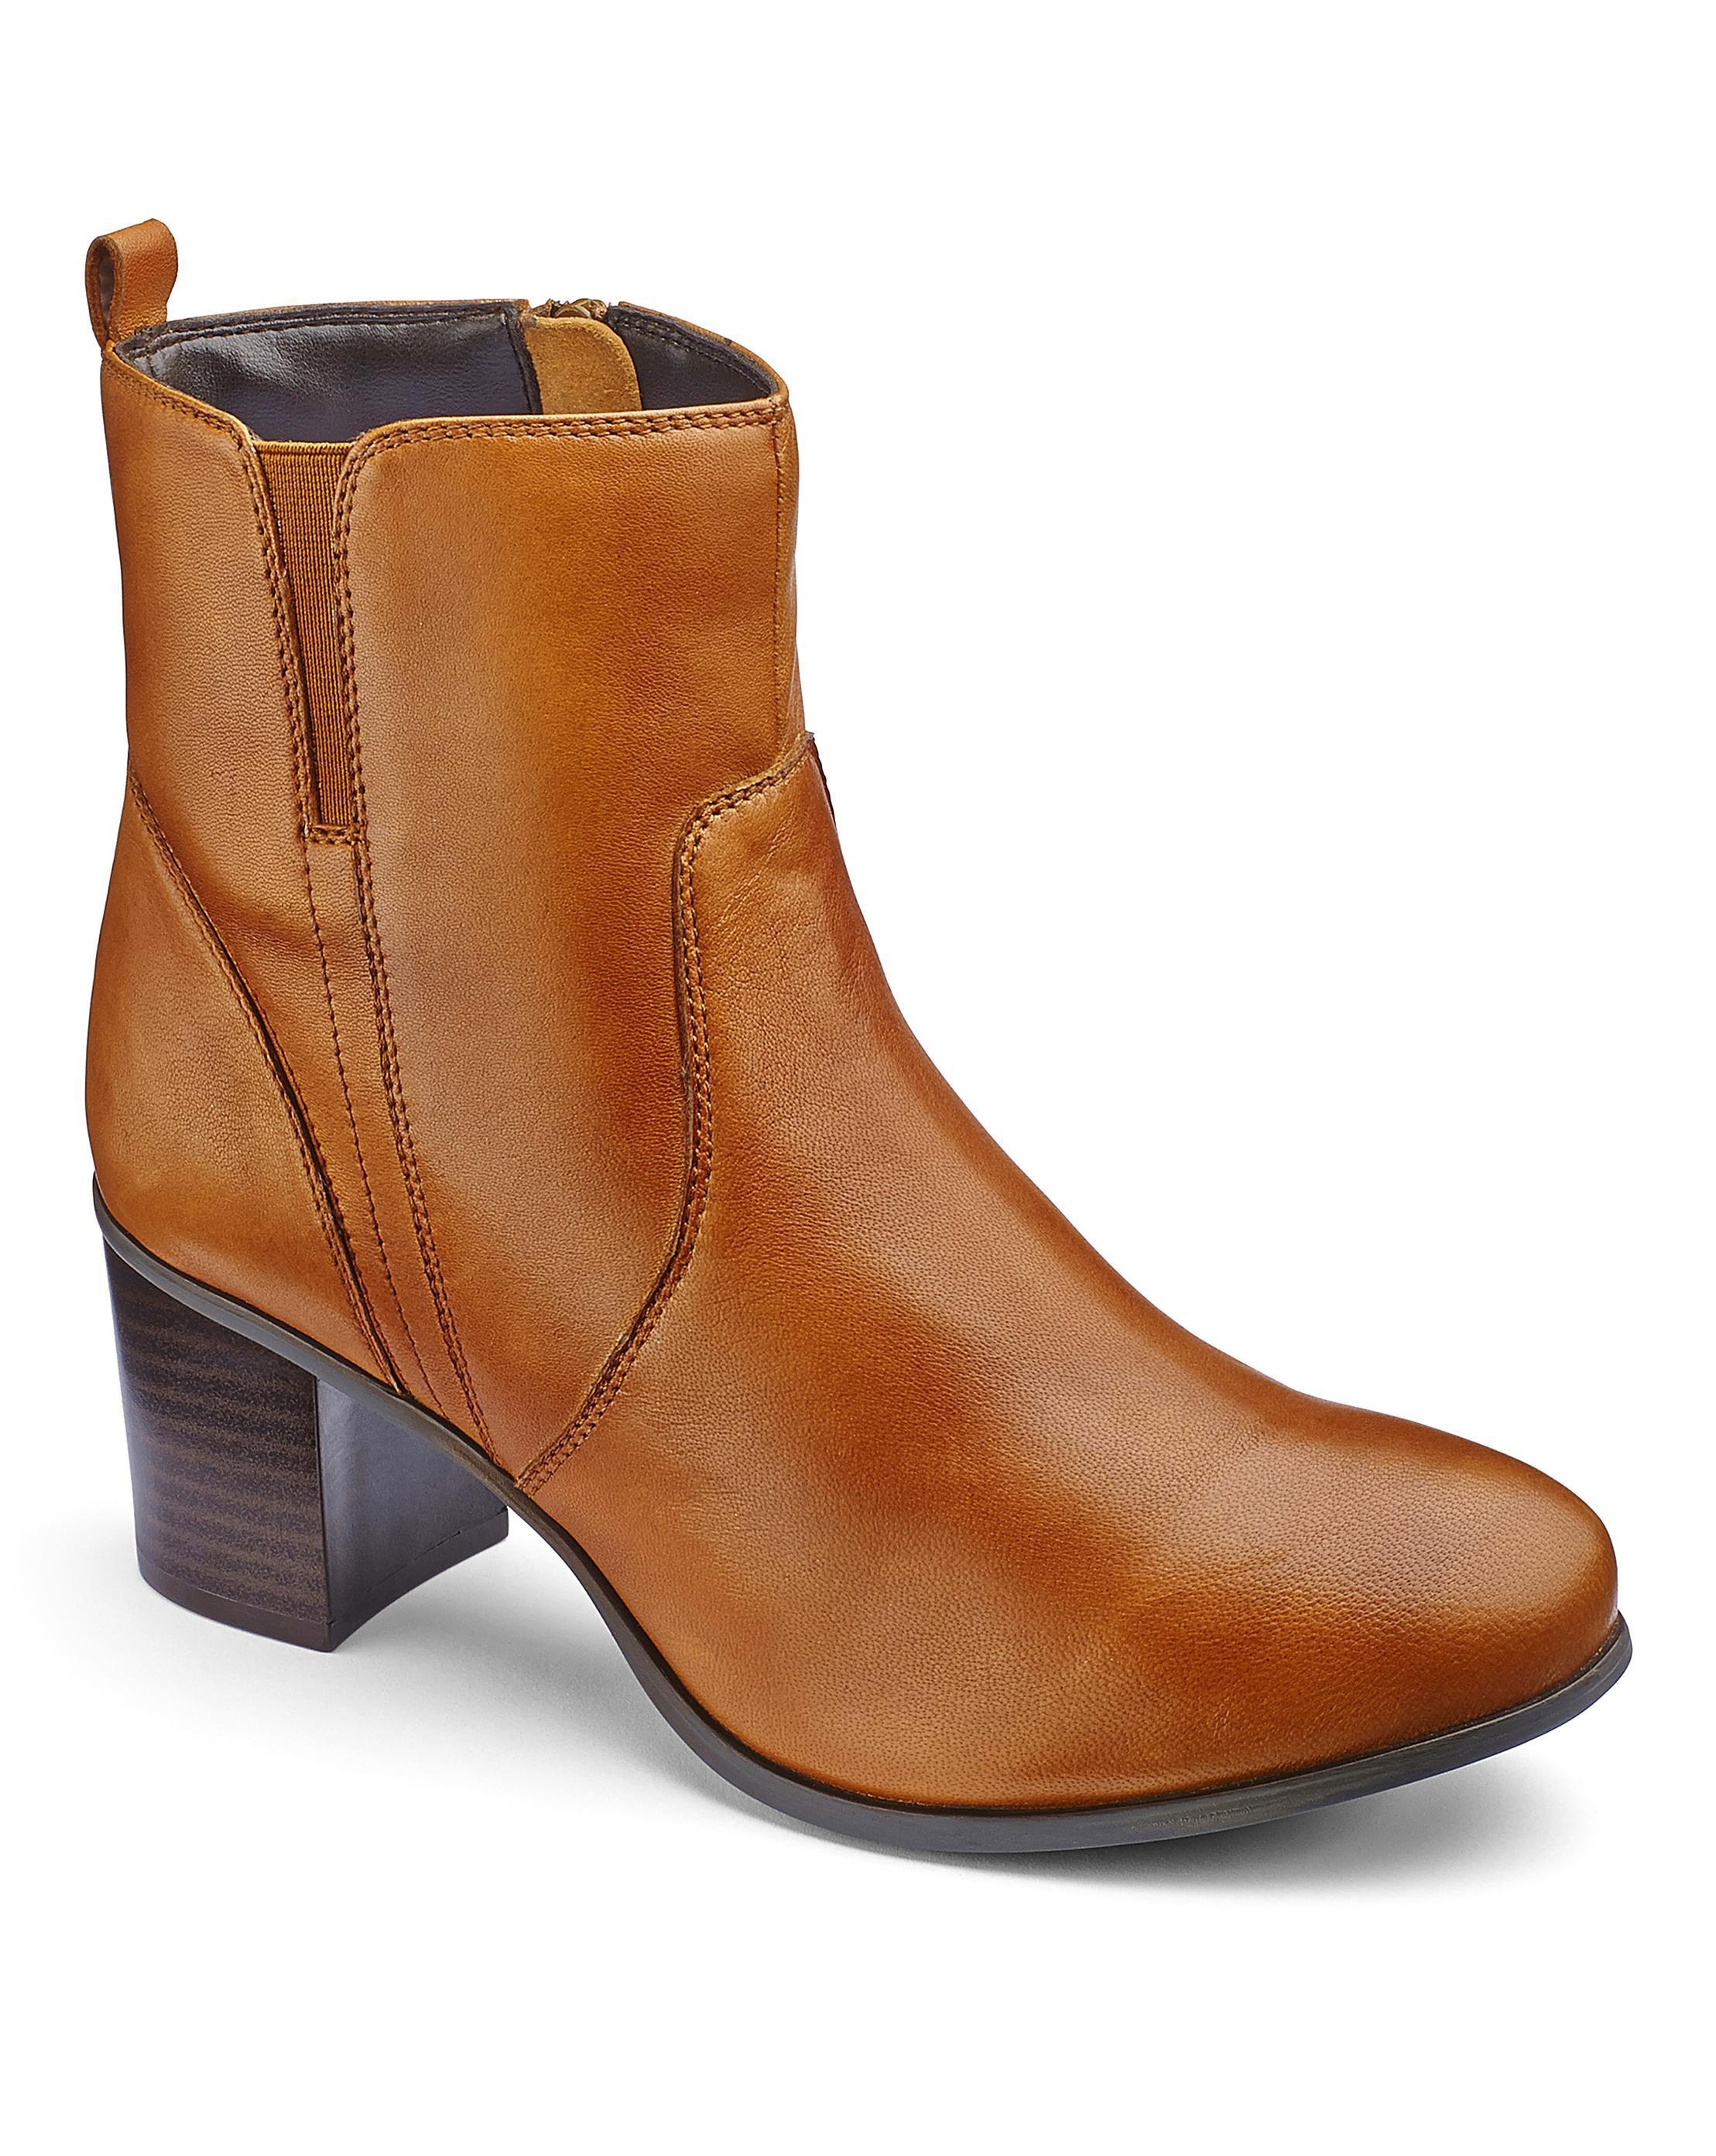 cheap sale amazing price Heavenly Soles Heeled Leather Ankle Boots Wide E Fit newest sale online shopping online free shipping JqMtDJKn7